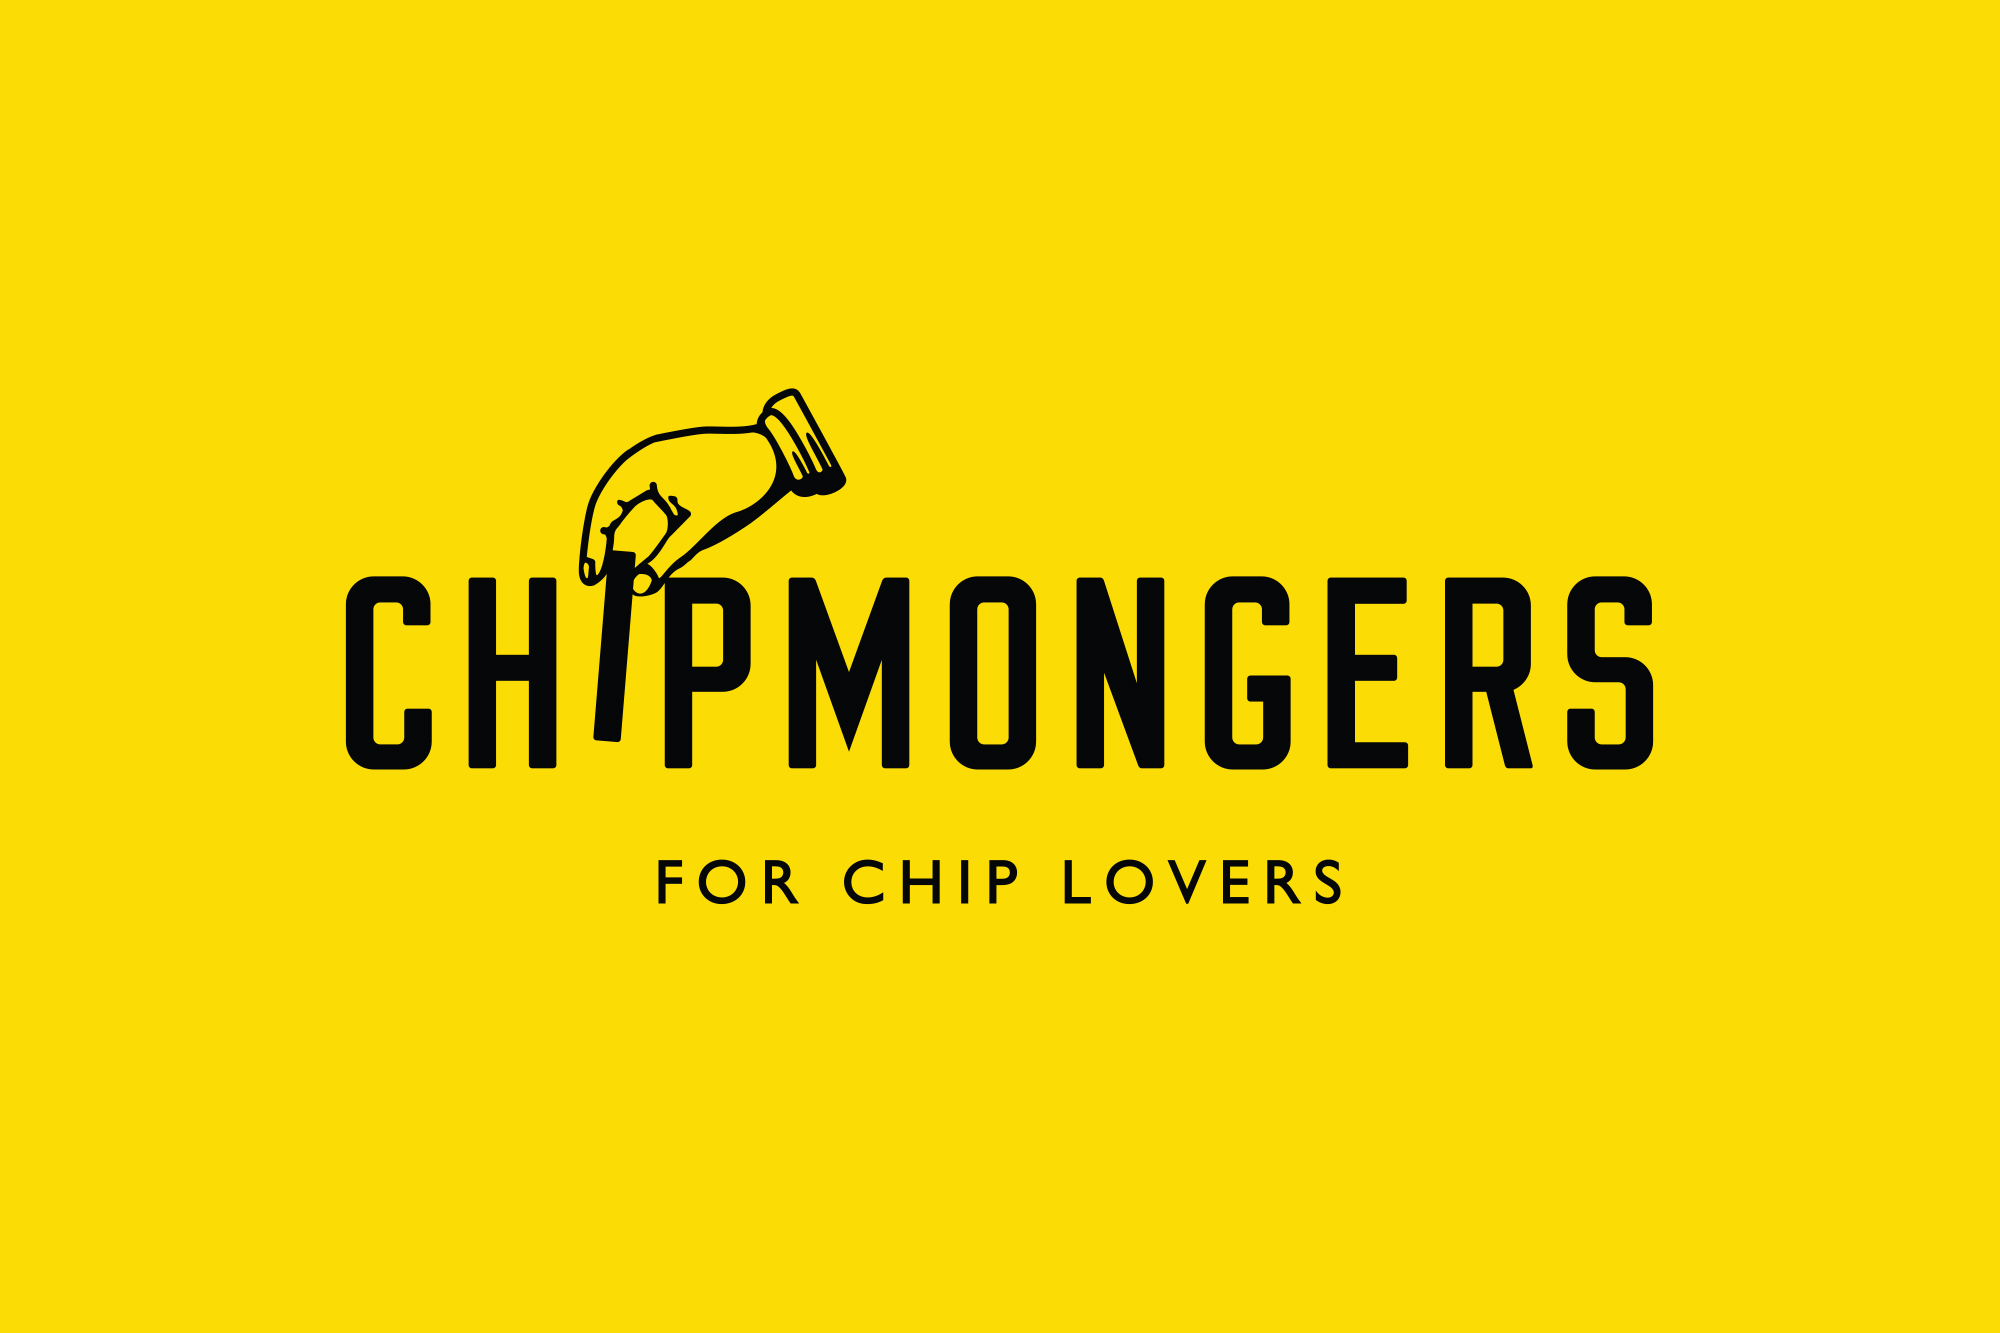 Cover image: Chipmongers - Brand